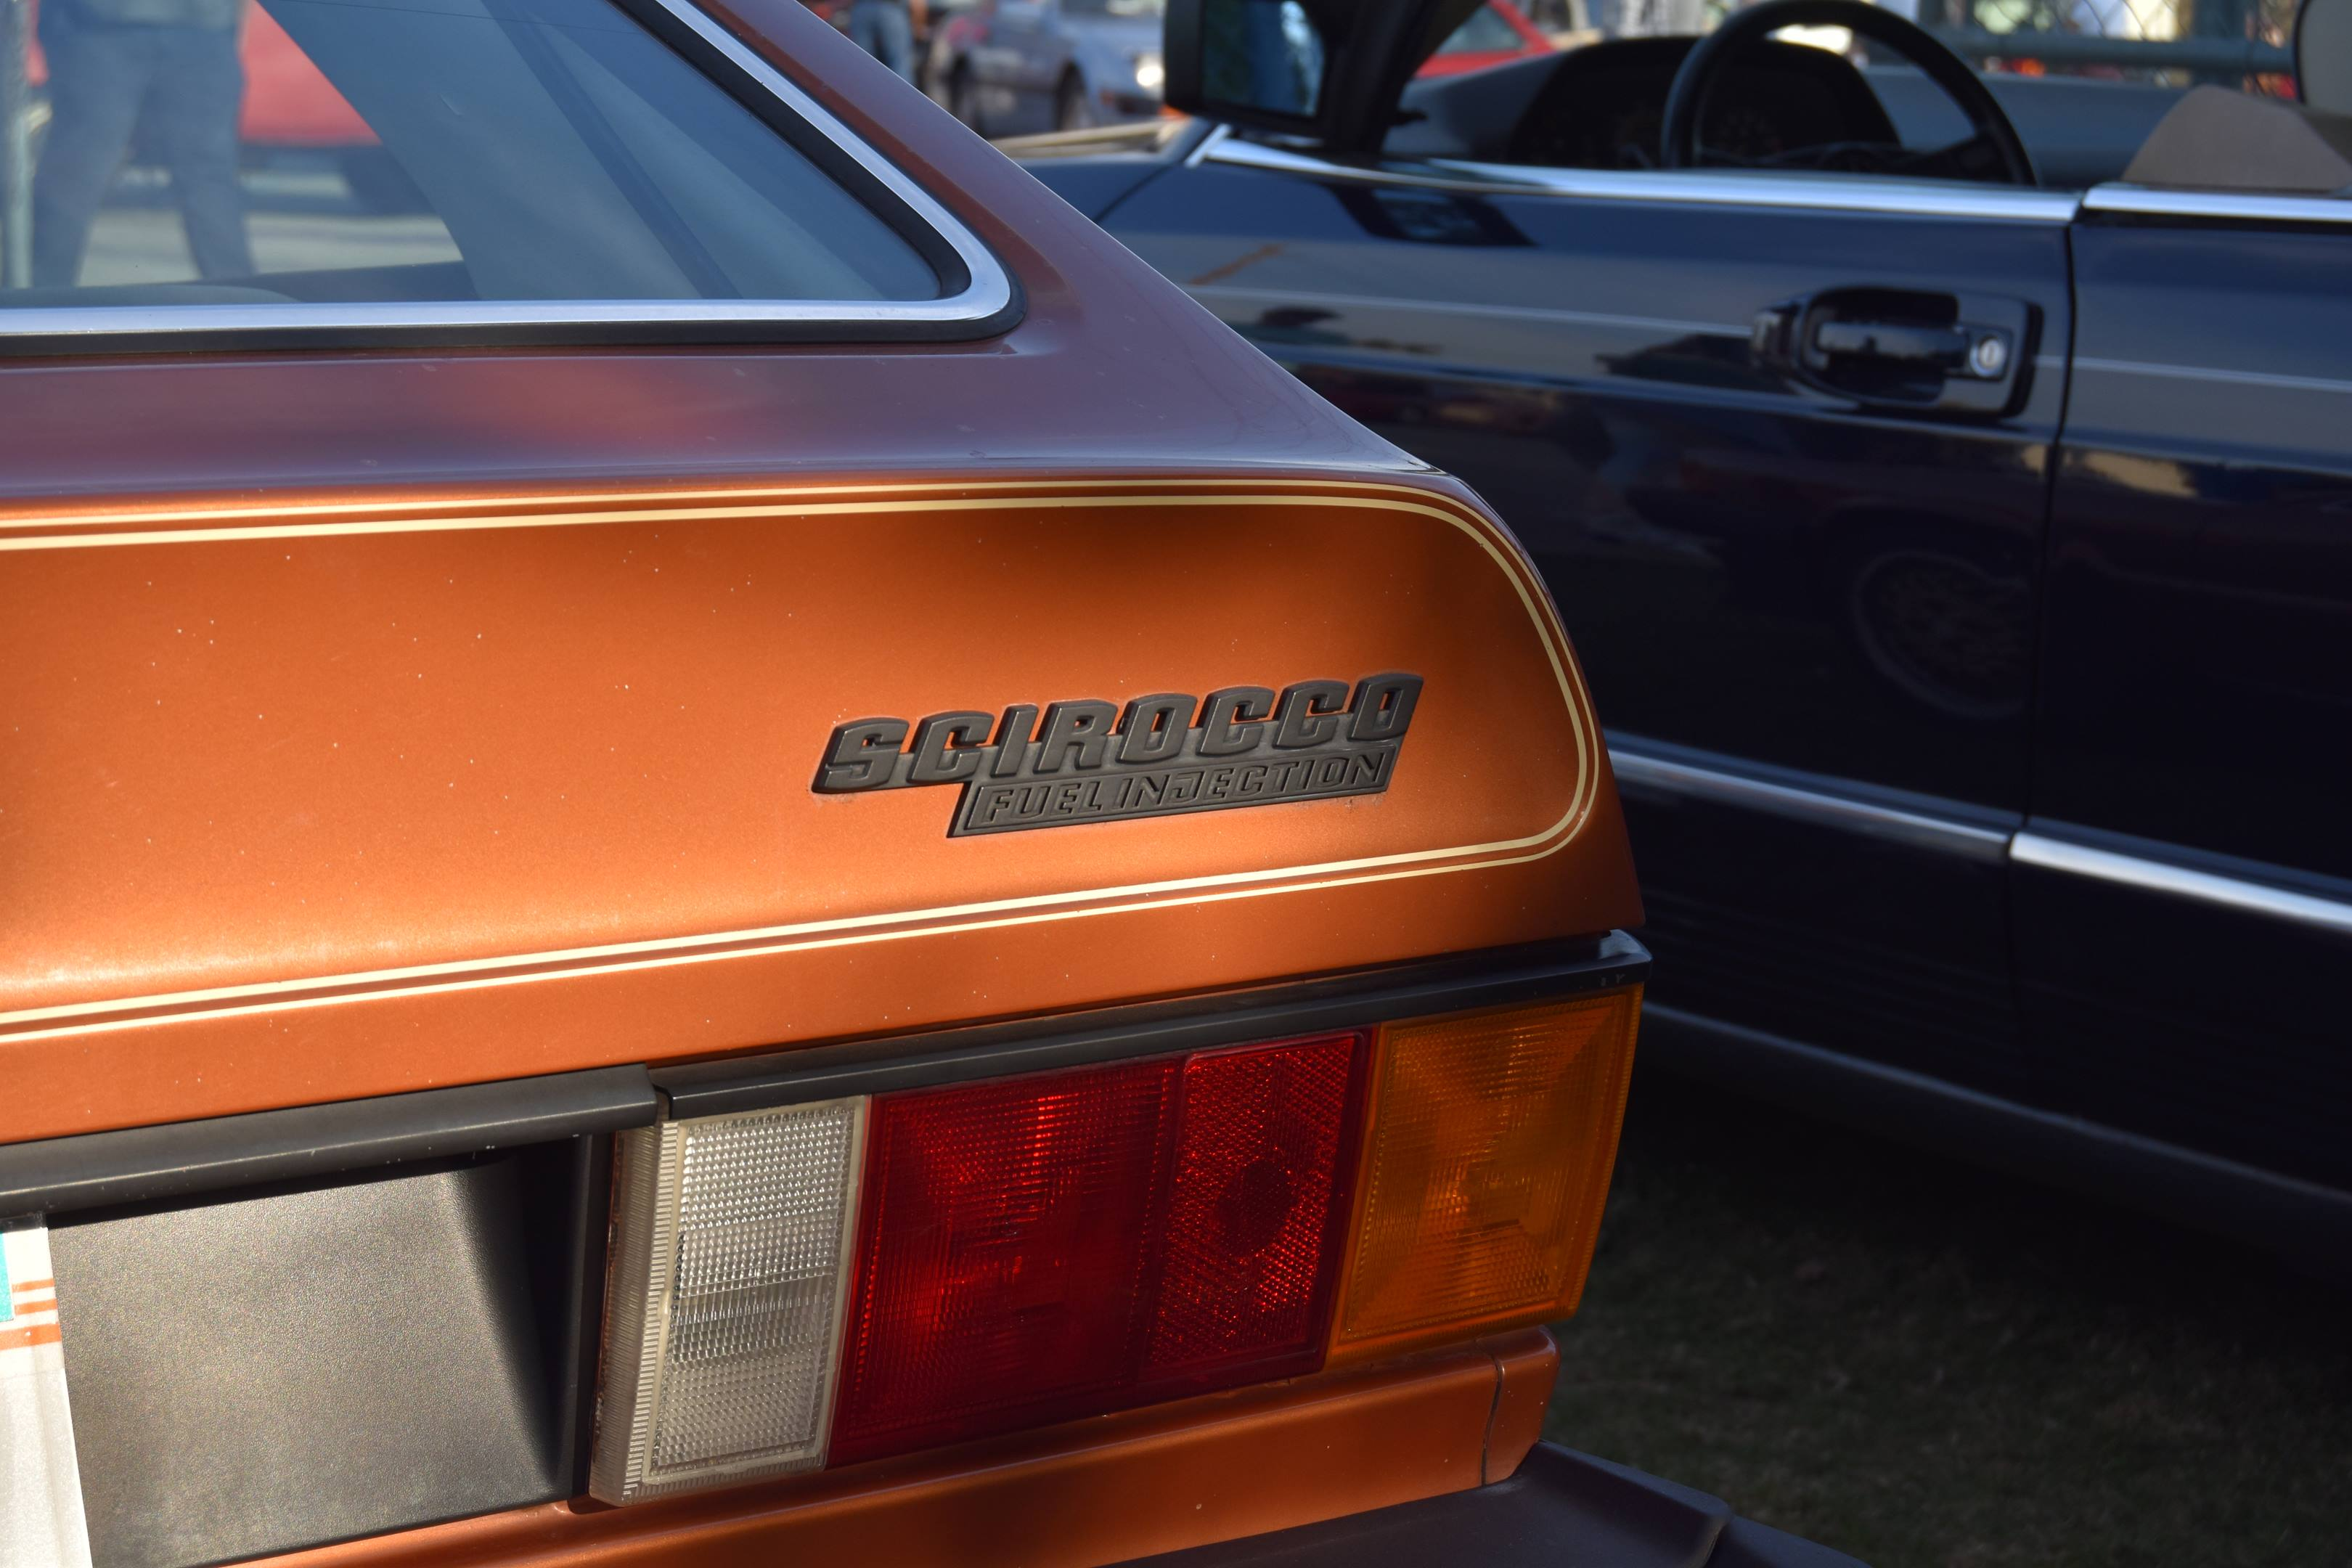 Volkswagen Scirocco rear badge